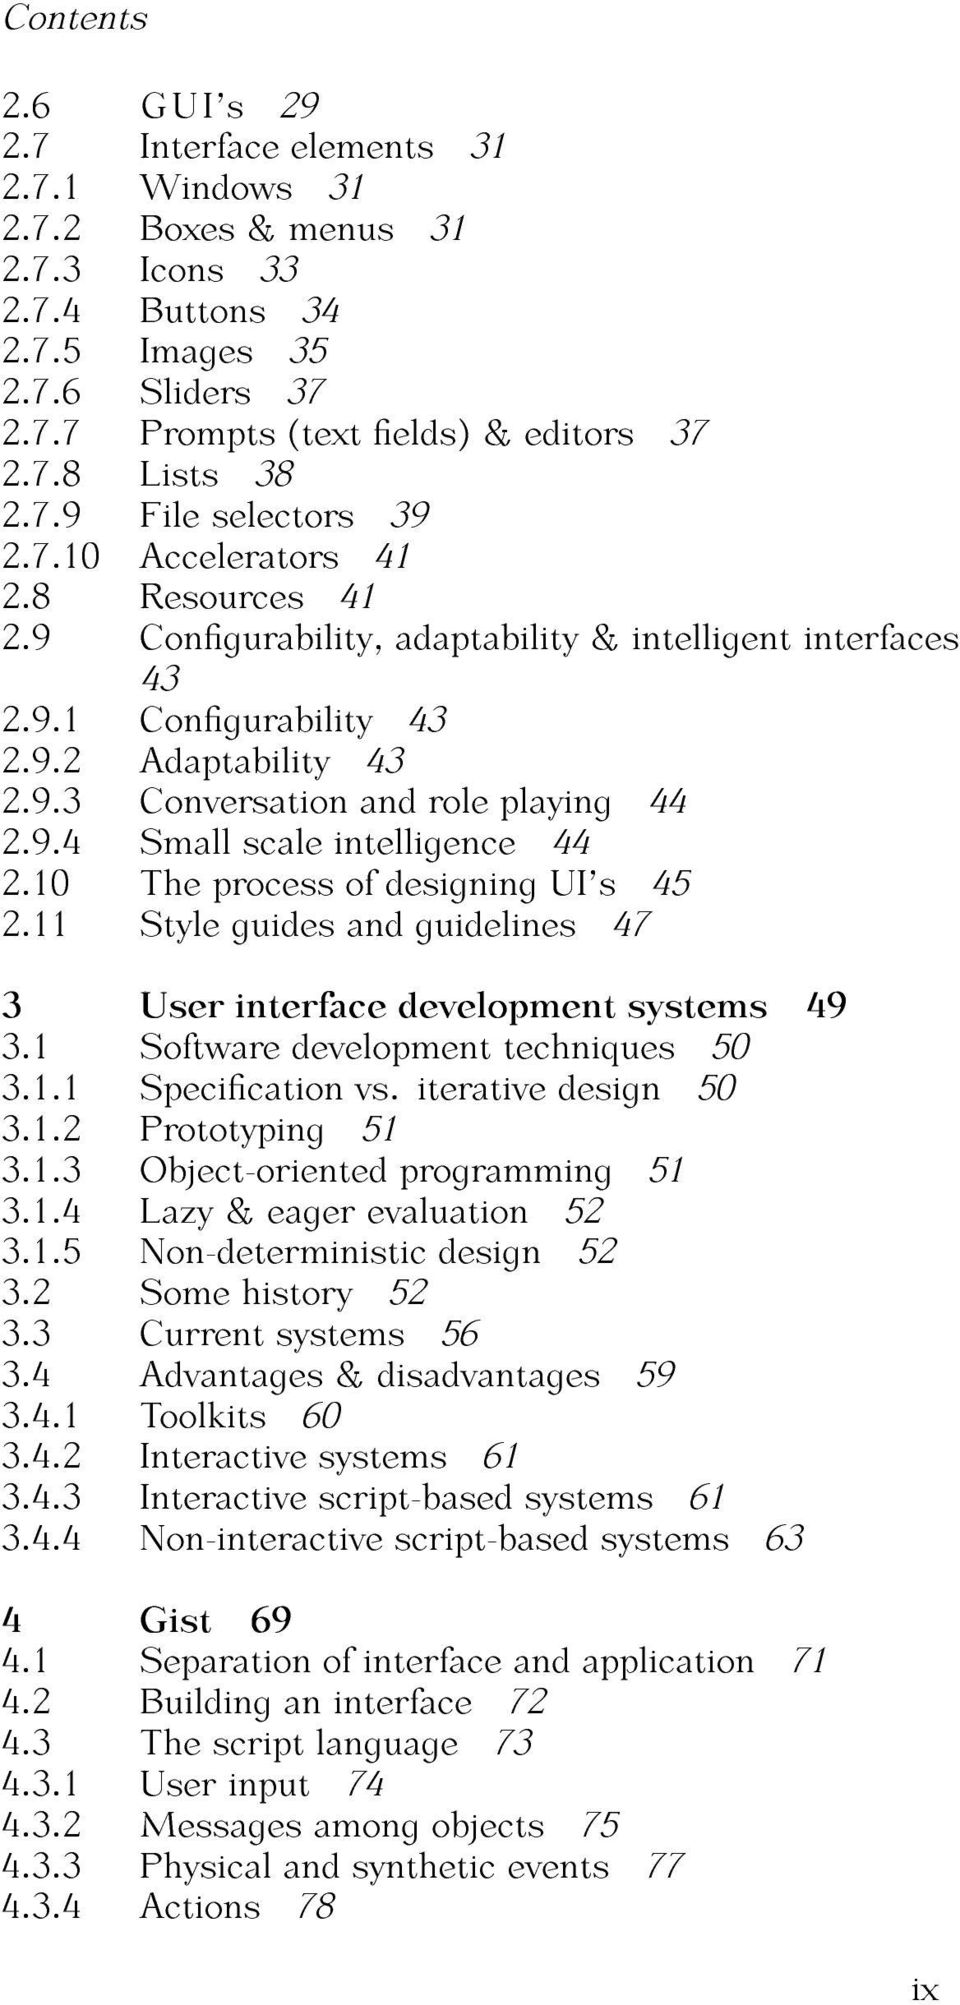 9.4 Small scale intelligence 44 2.10 The process of designing UI's 45 2.11 Style guides and guidelines 47 3 User interface development systems 49 3.1 Software development techniques 50 3.1.1 Specication vs.